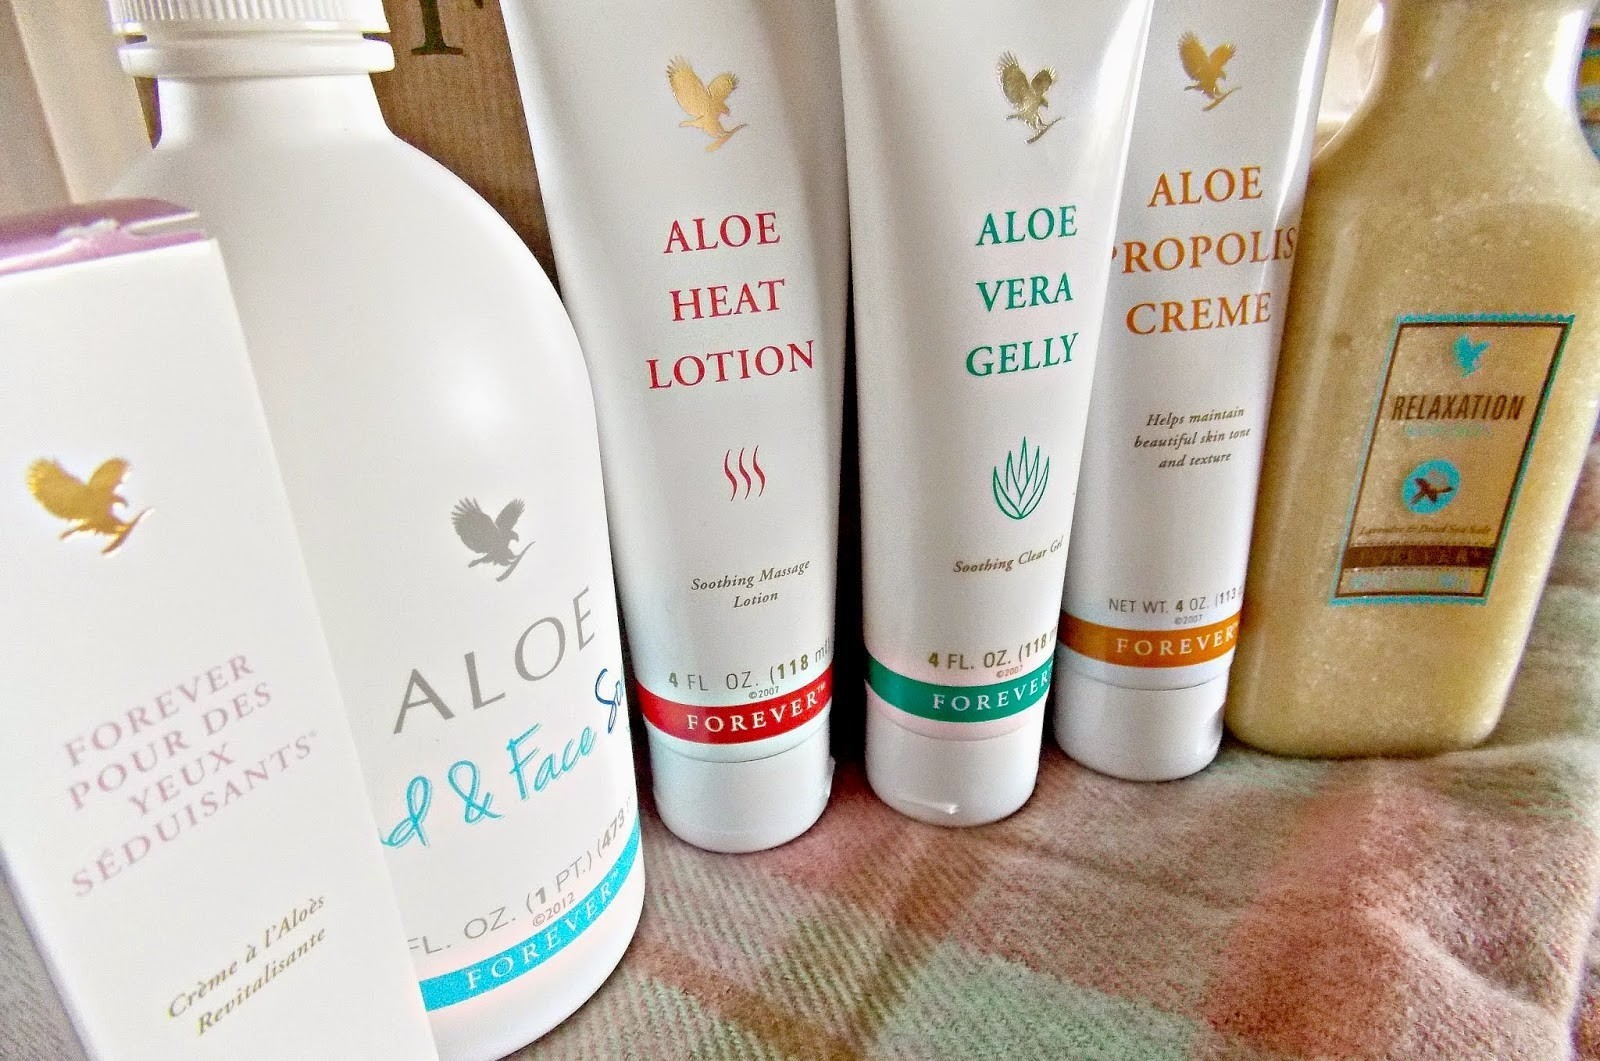 Forever Living | Aloe Gelly, Heat Lotion, Bath Salts and Propolis Creme Product Review